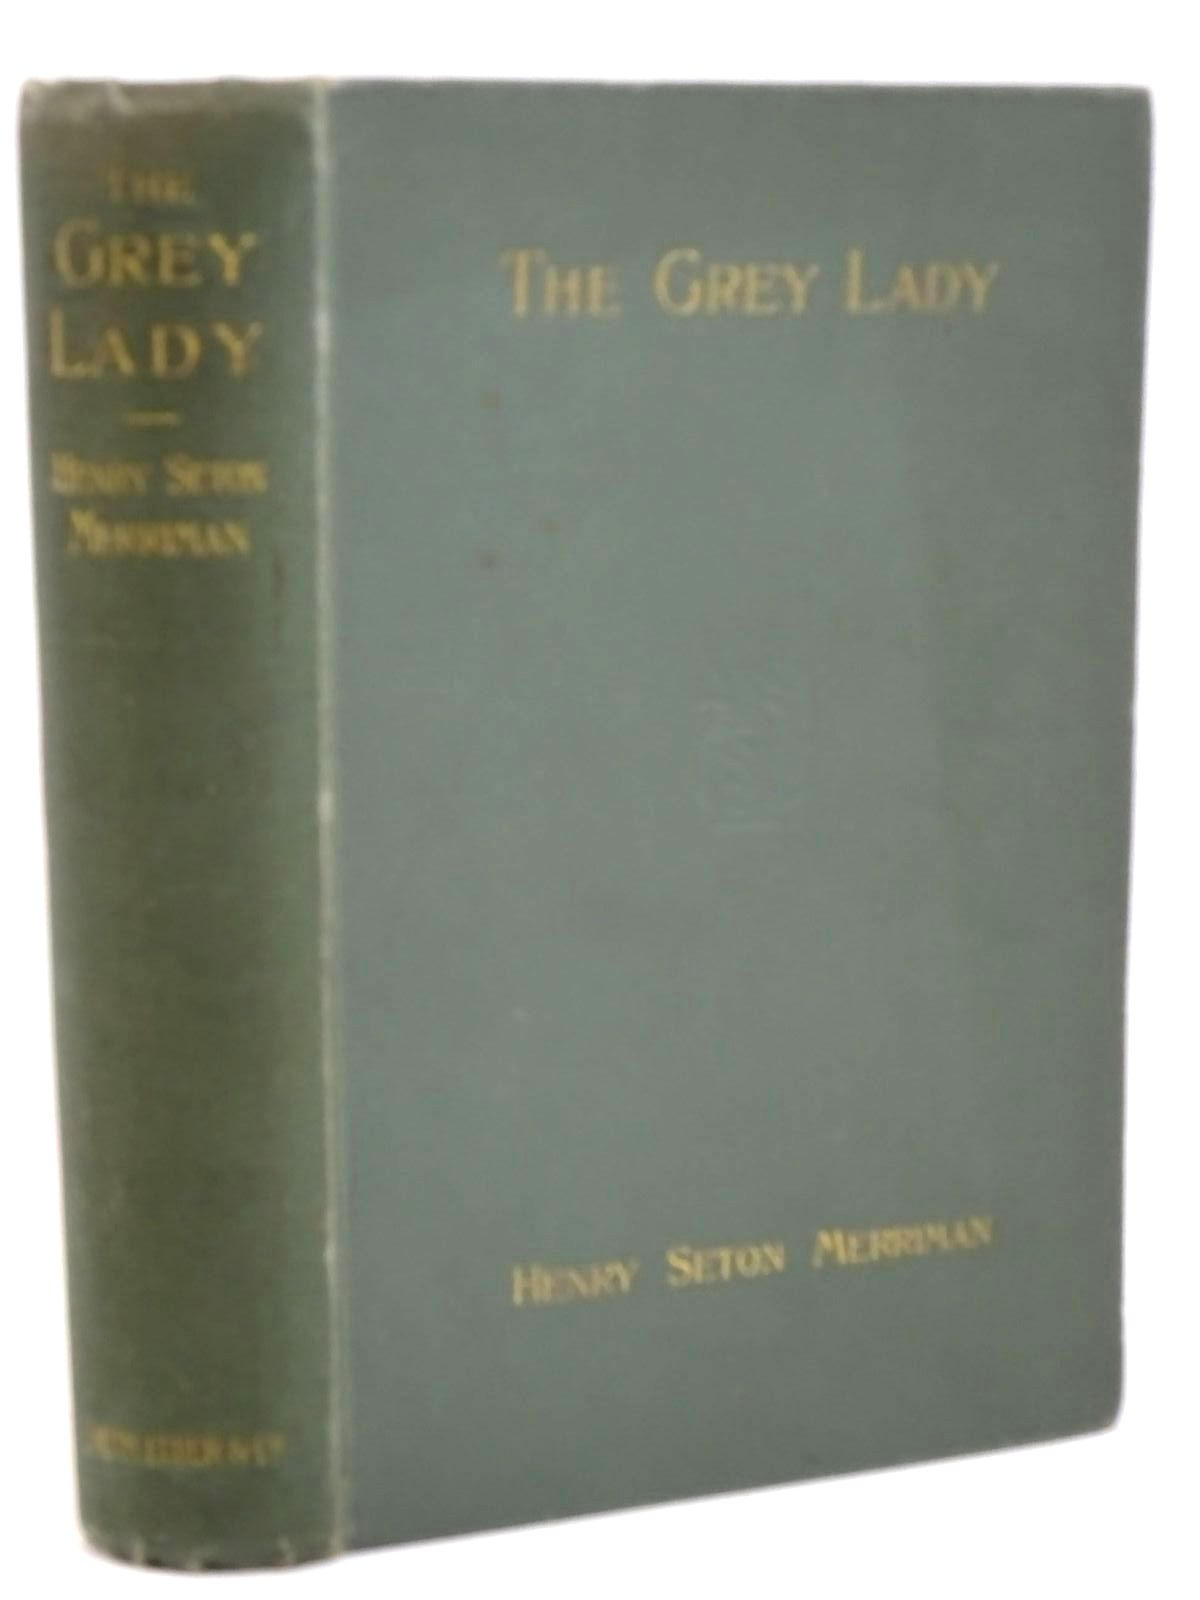 Photo of THE GREY LADY